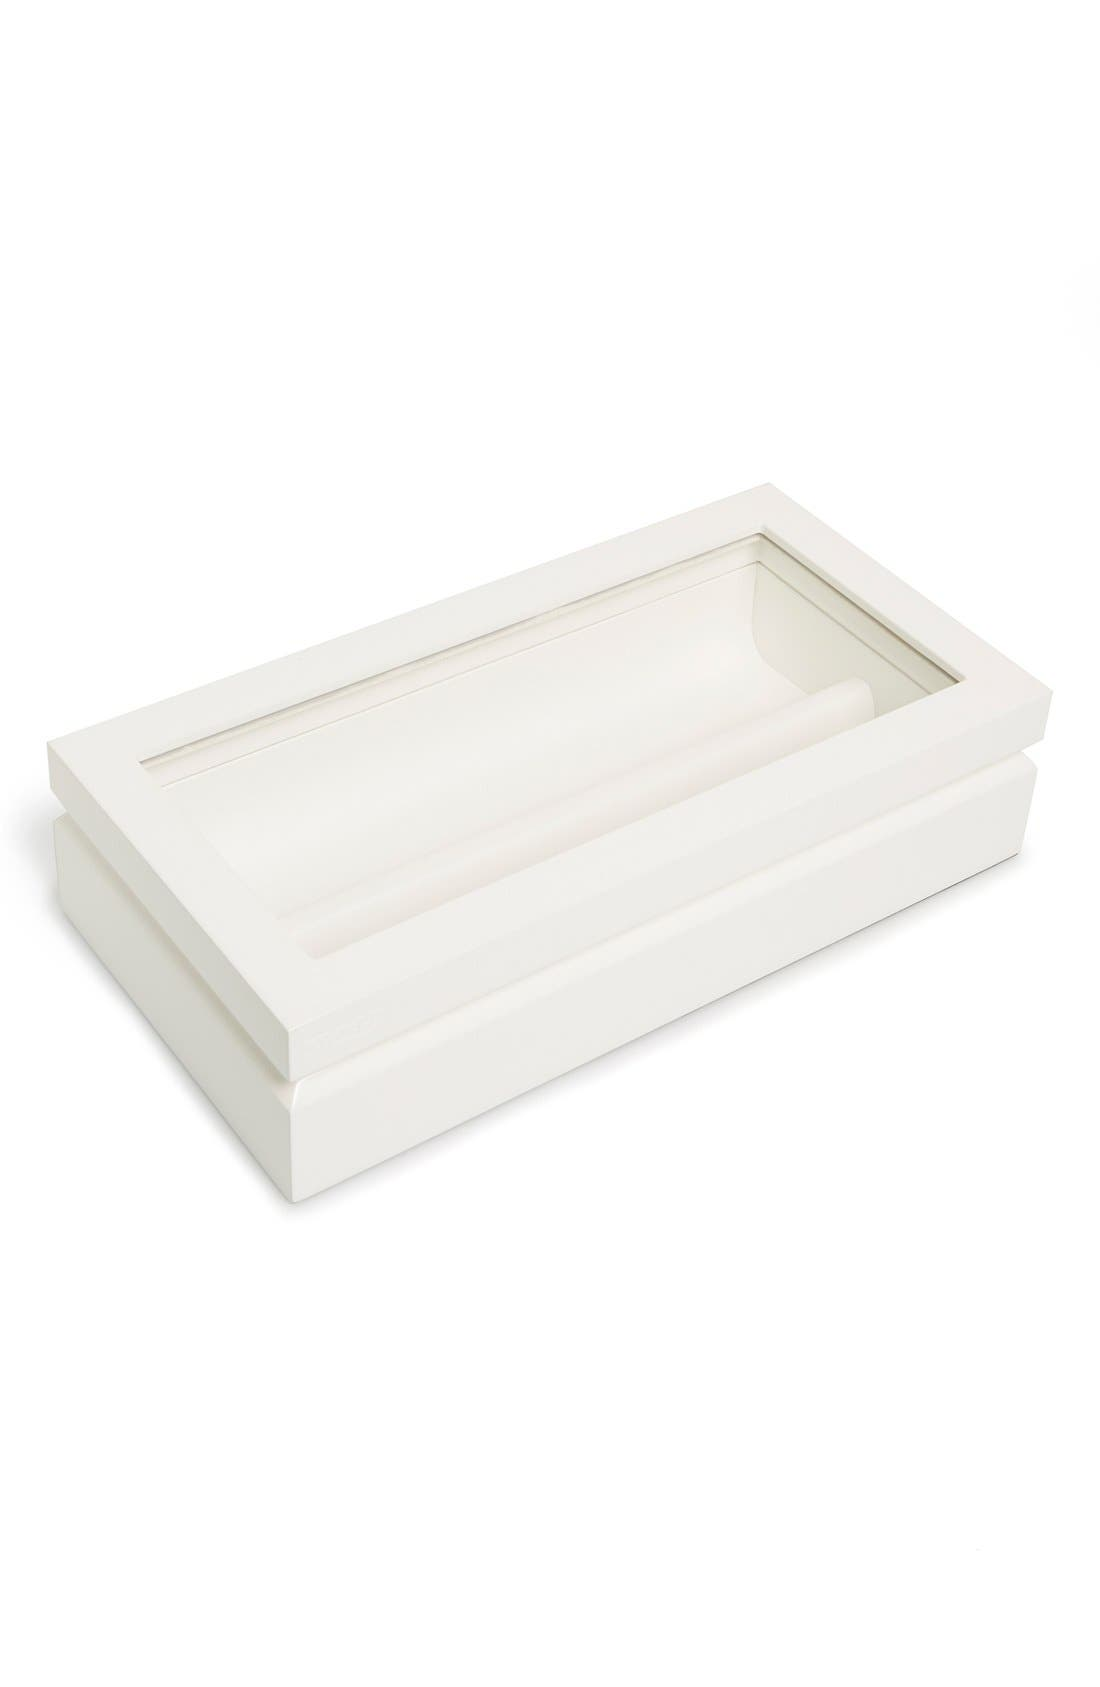 Lacquered Wood Window Top Eyewear Organizer Case,                             Main thumbnail 2, color,